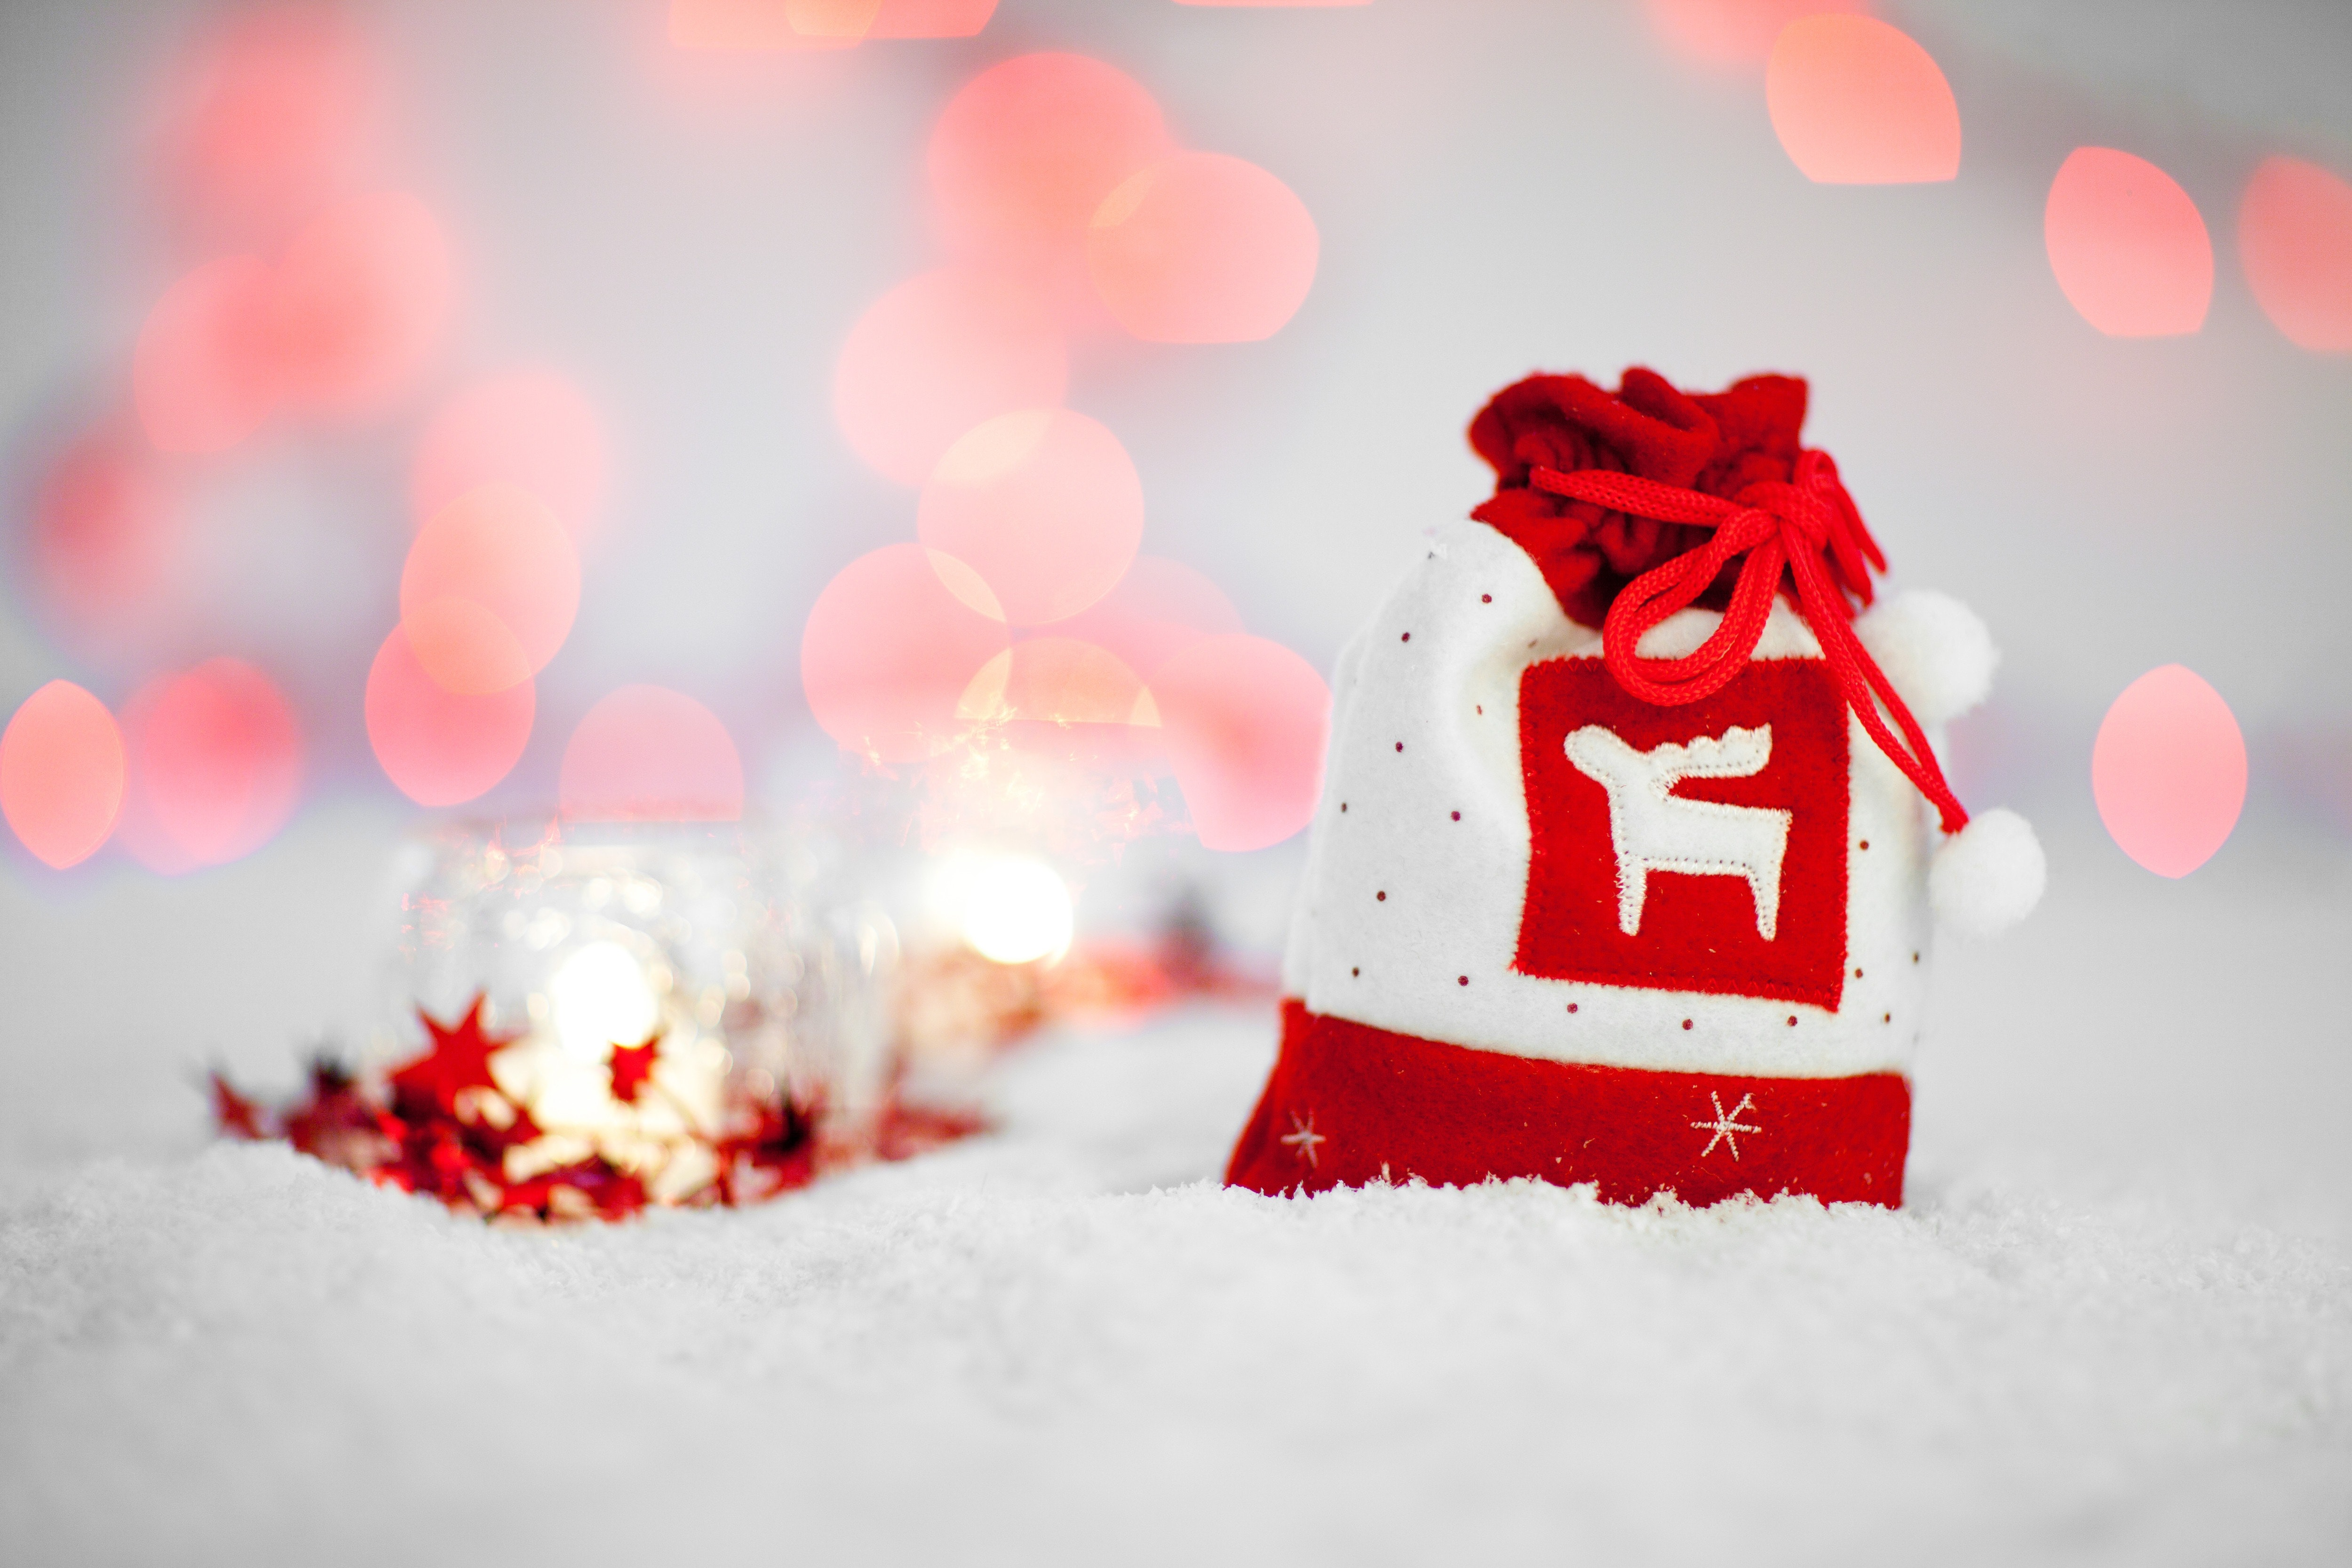 Fantastic Wallpaper Love Winter - 1513450765_youloveit_com_big_hd_christmas_pictures_wallpapers01  Pic_619864.jpeg